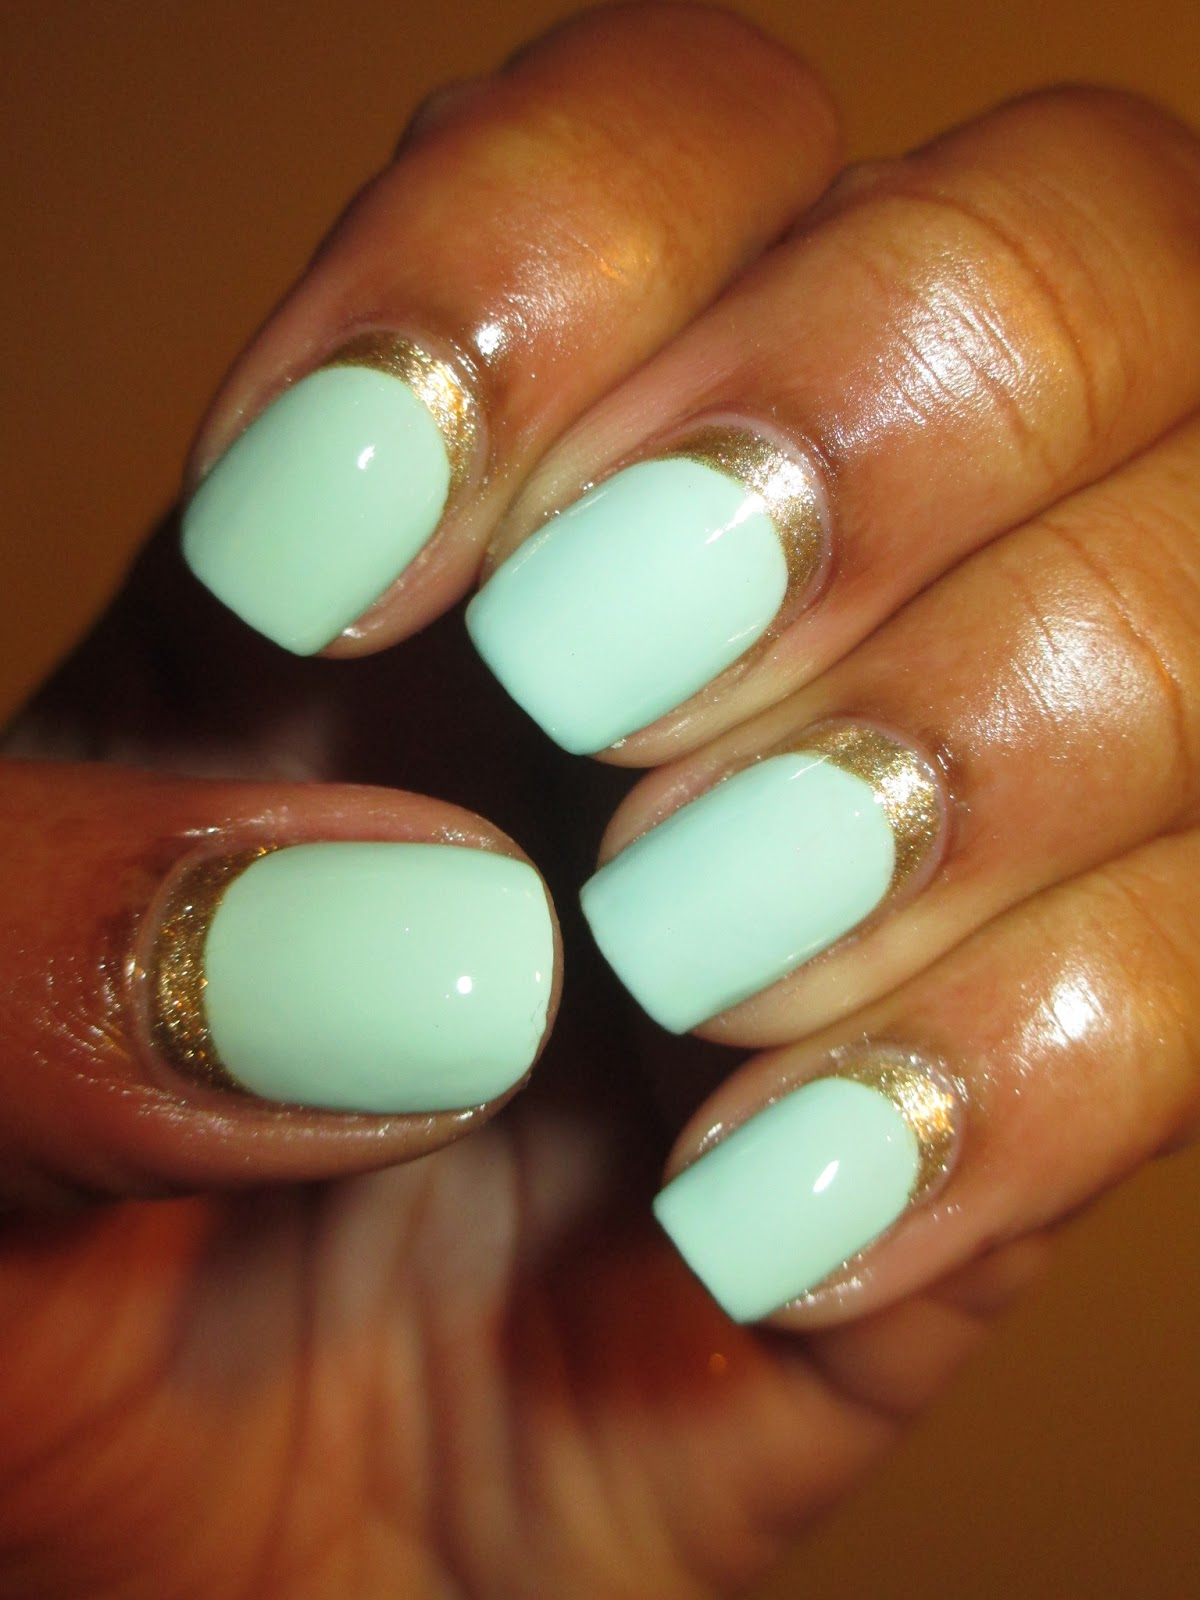 Fairly charming ruffian mani in mint essie mint candy apple ruffian reverse french funky french mint prinsesfo Images